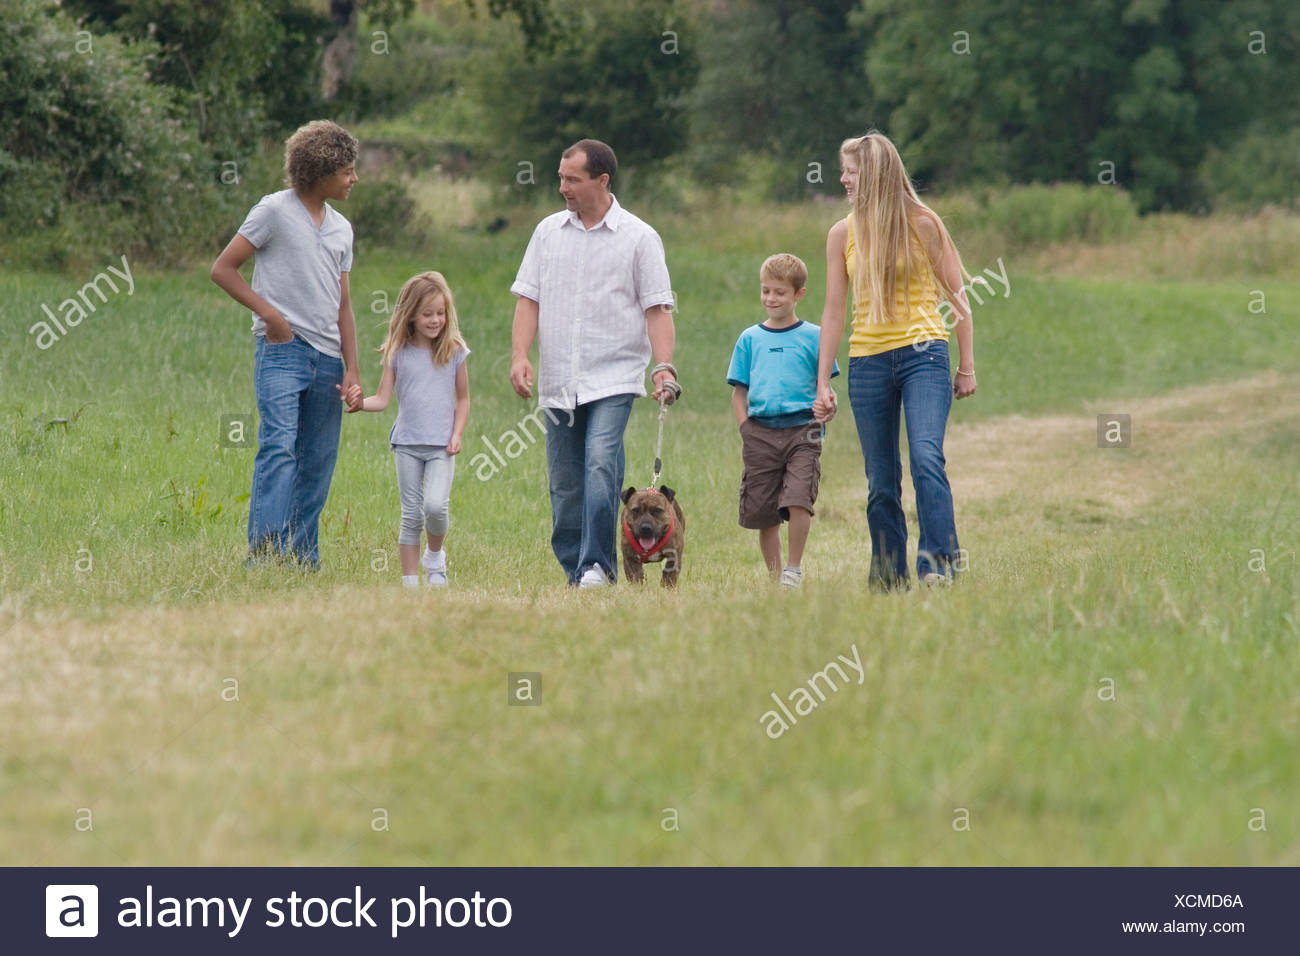 young family walking in countryside with brindle staffordshire bull terrier dog - Stock Image